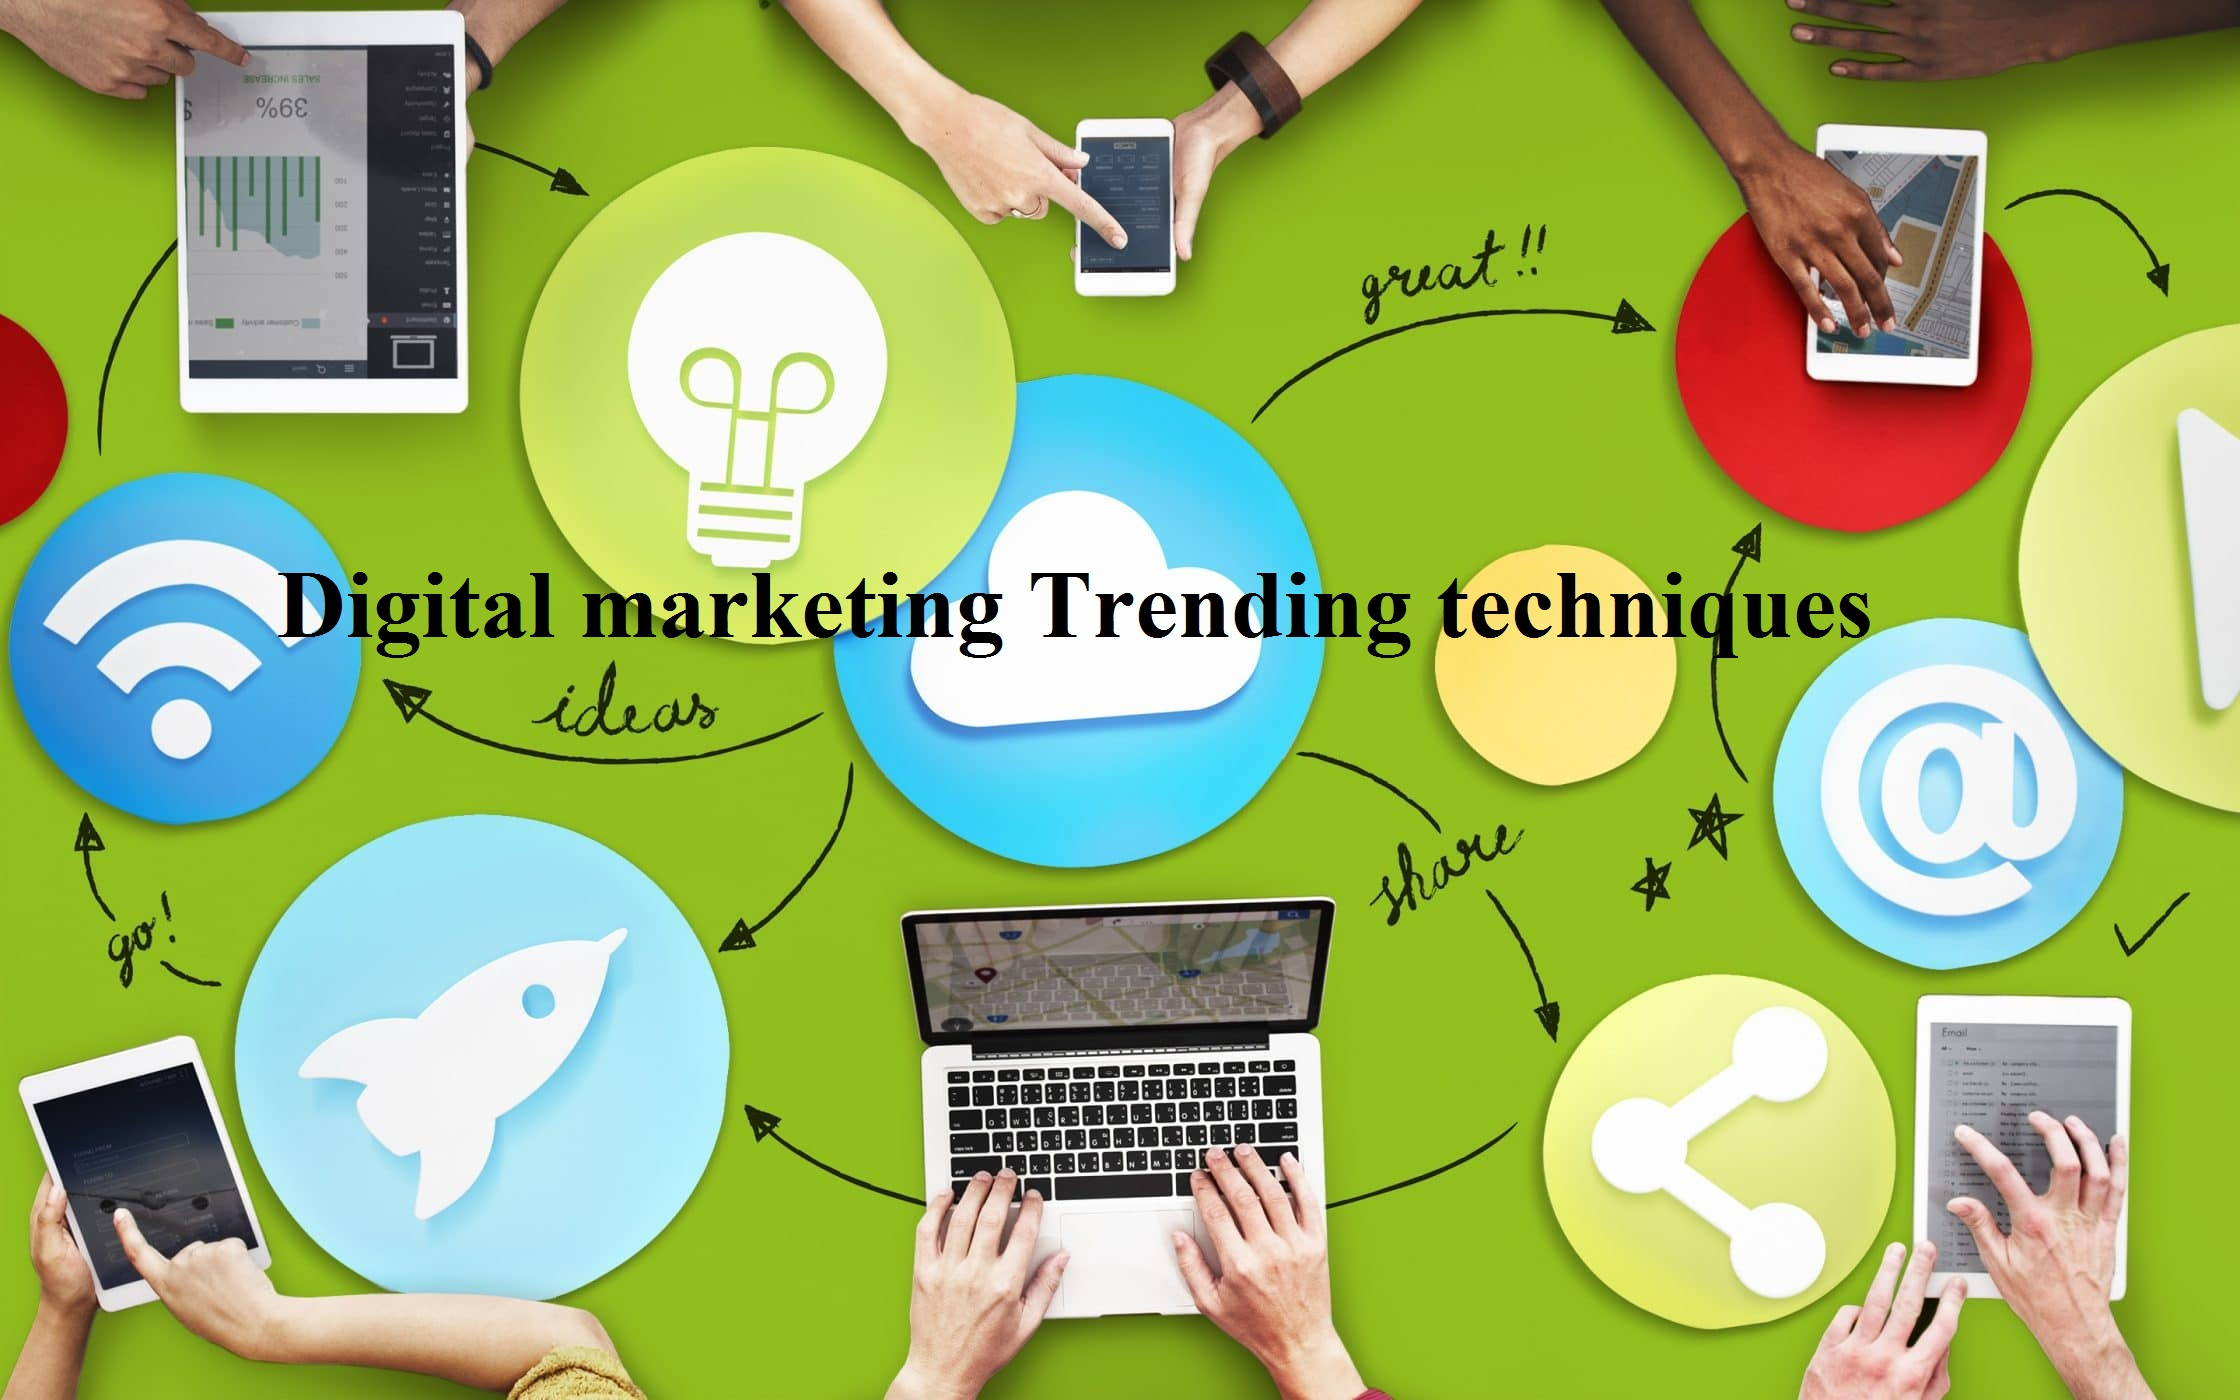 The prime rated digital marketing techniques according to Insights readers